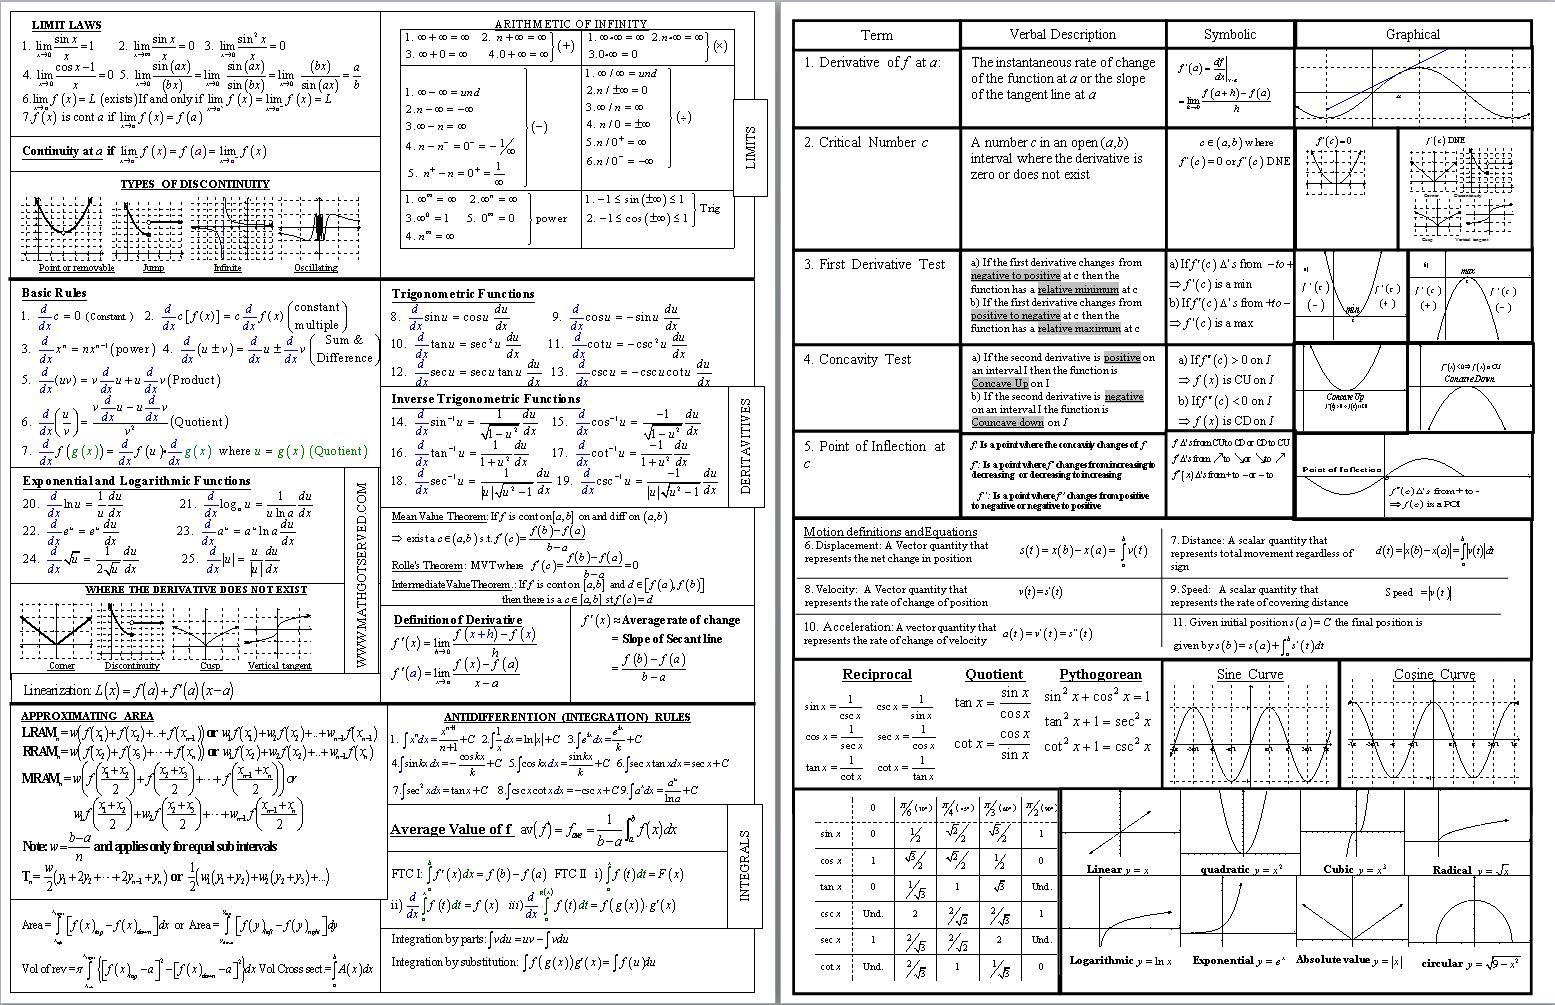 best math cl images on pinterest ap calculus business worksheets for high school best best. Black Bedroom Furniture Sets. Home Design Ideas